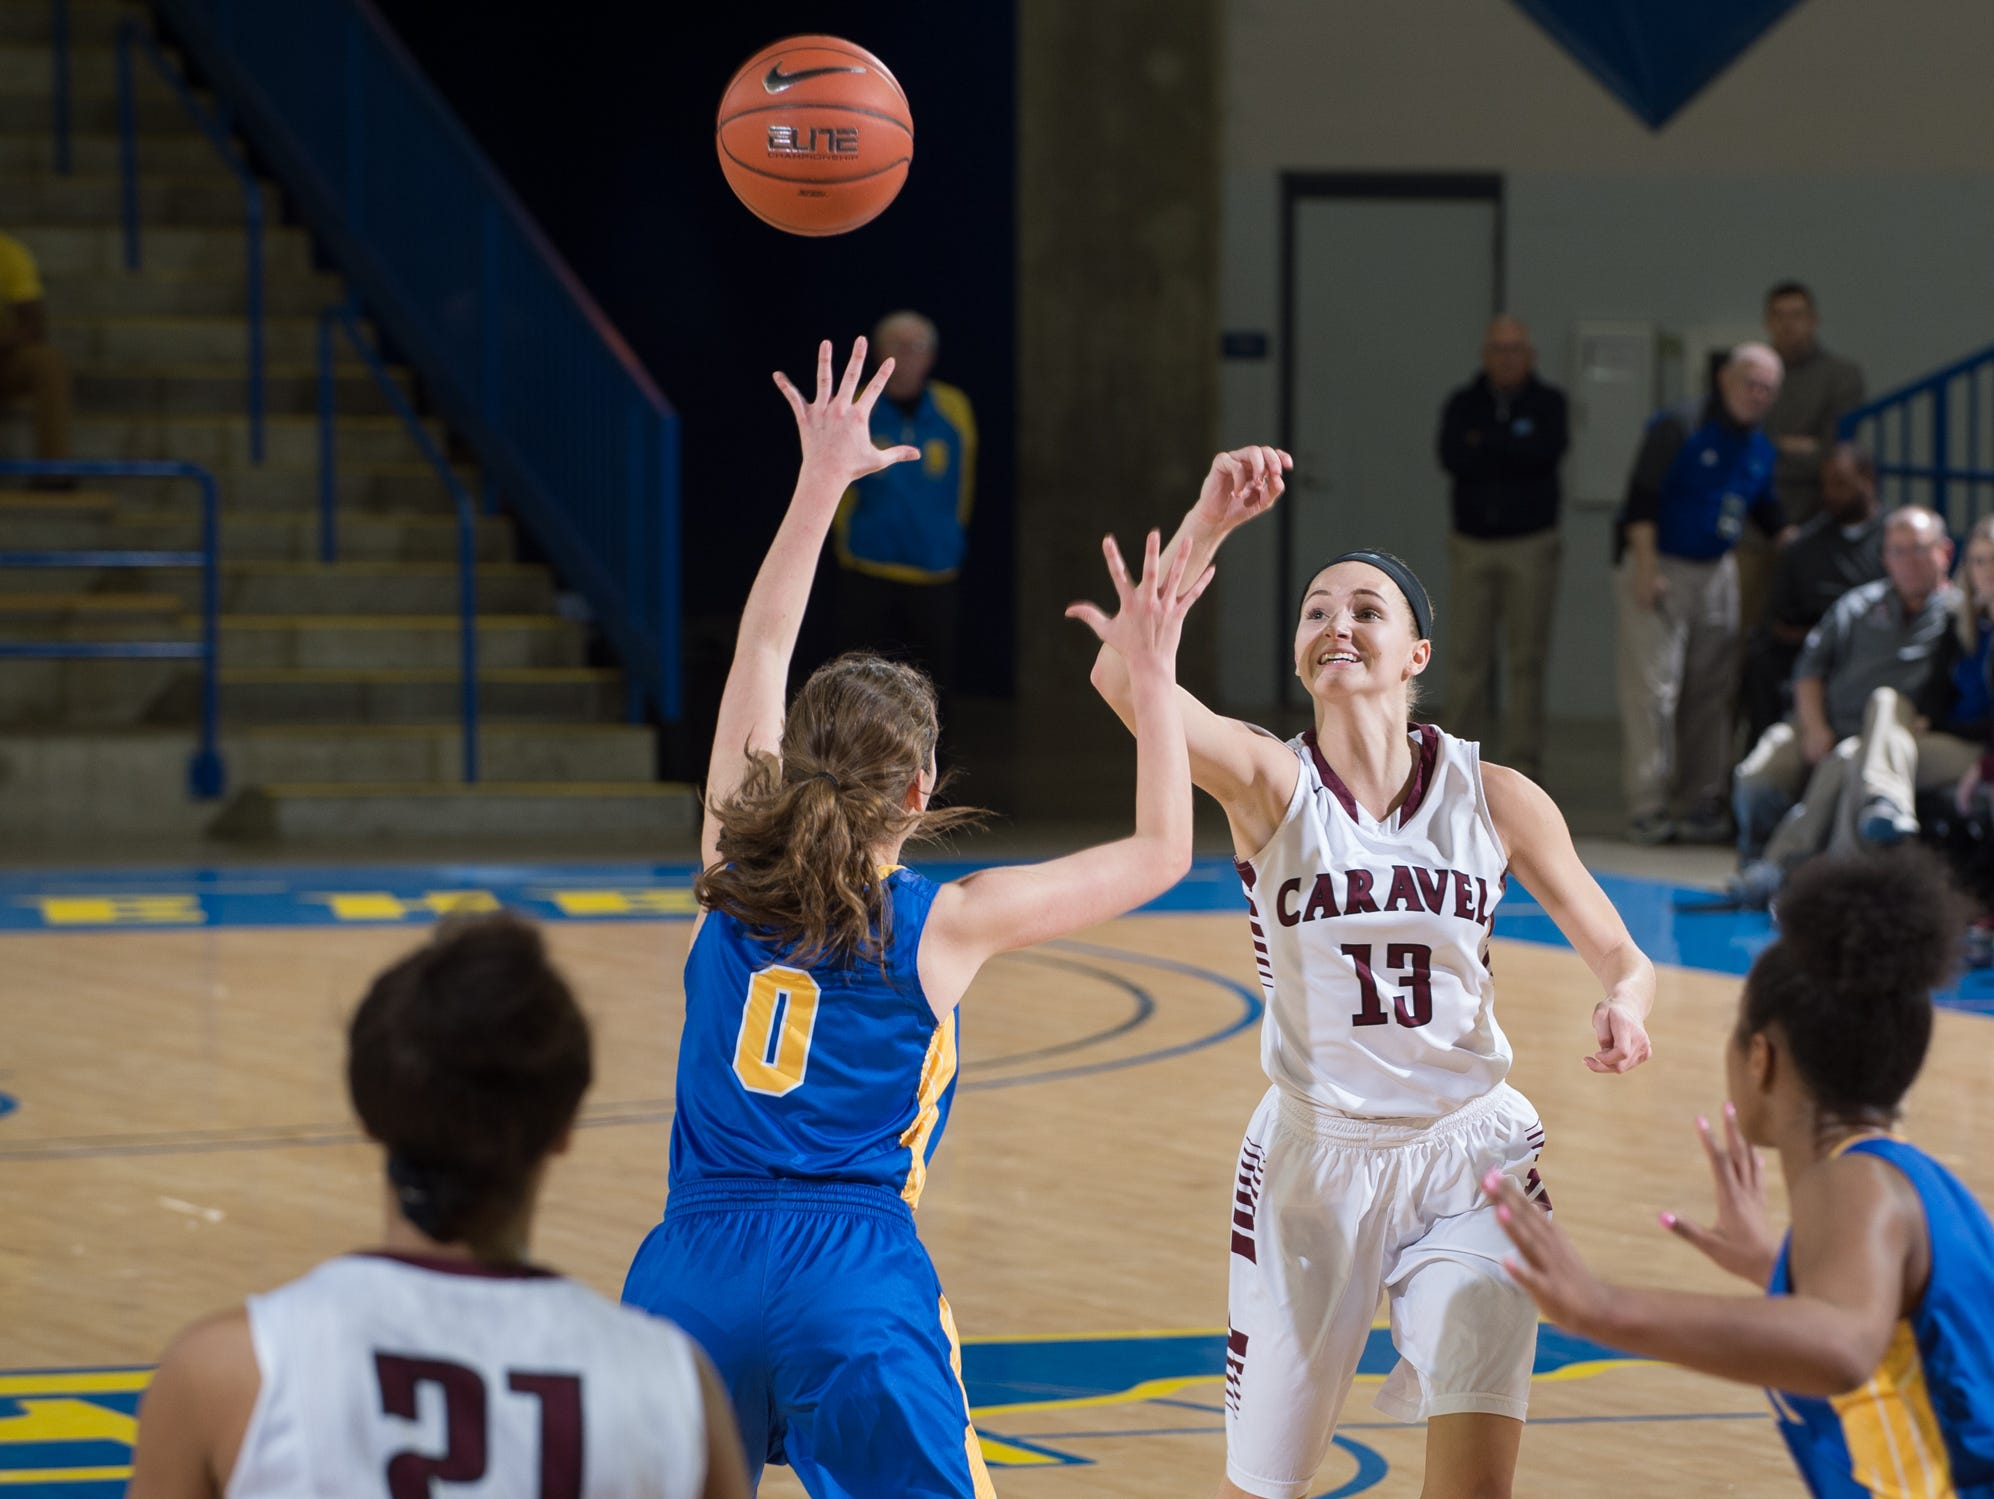 Caravel's Grace Lange (13) passes the ball over A.I. duPont's Adeline Runco (0) in the quarterfinals of DIAA Girls Basketball Tournament at the University of Delaware.